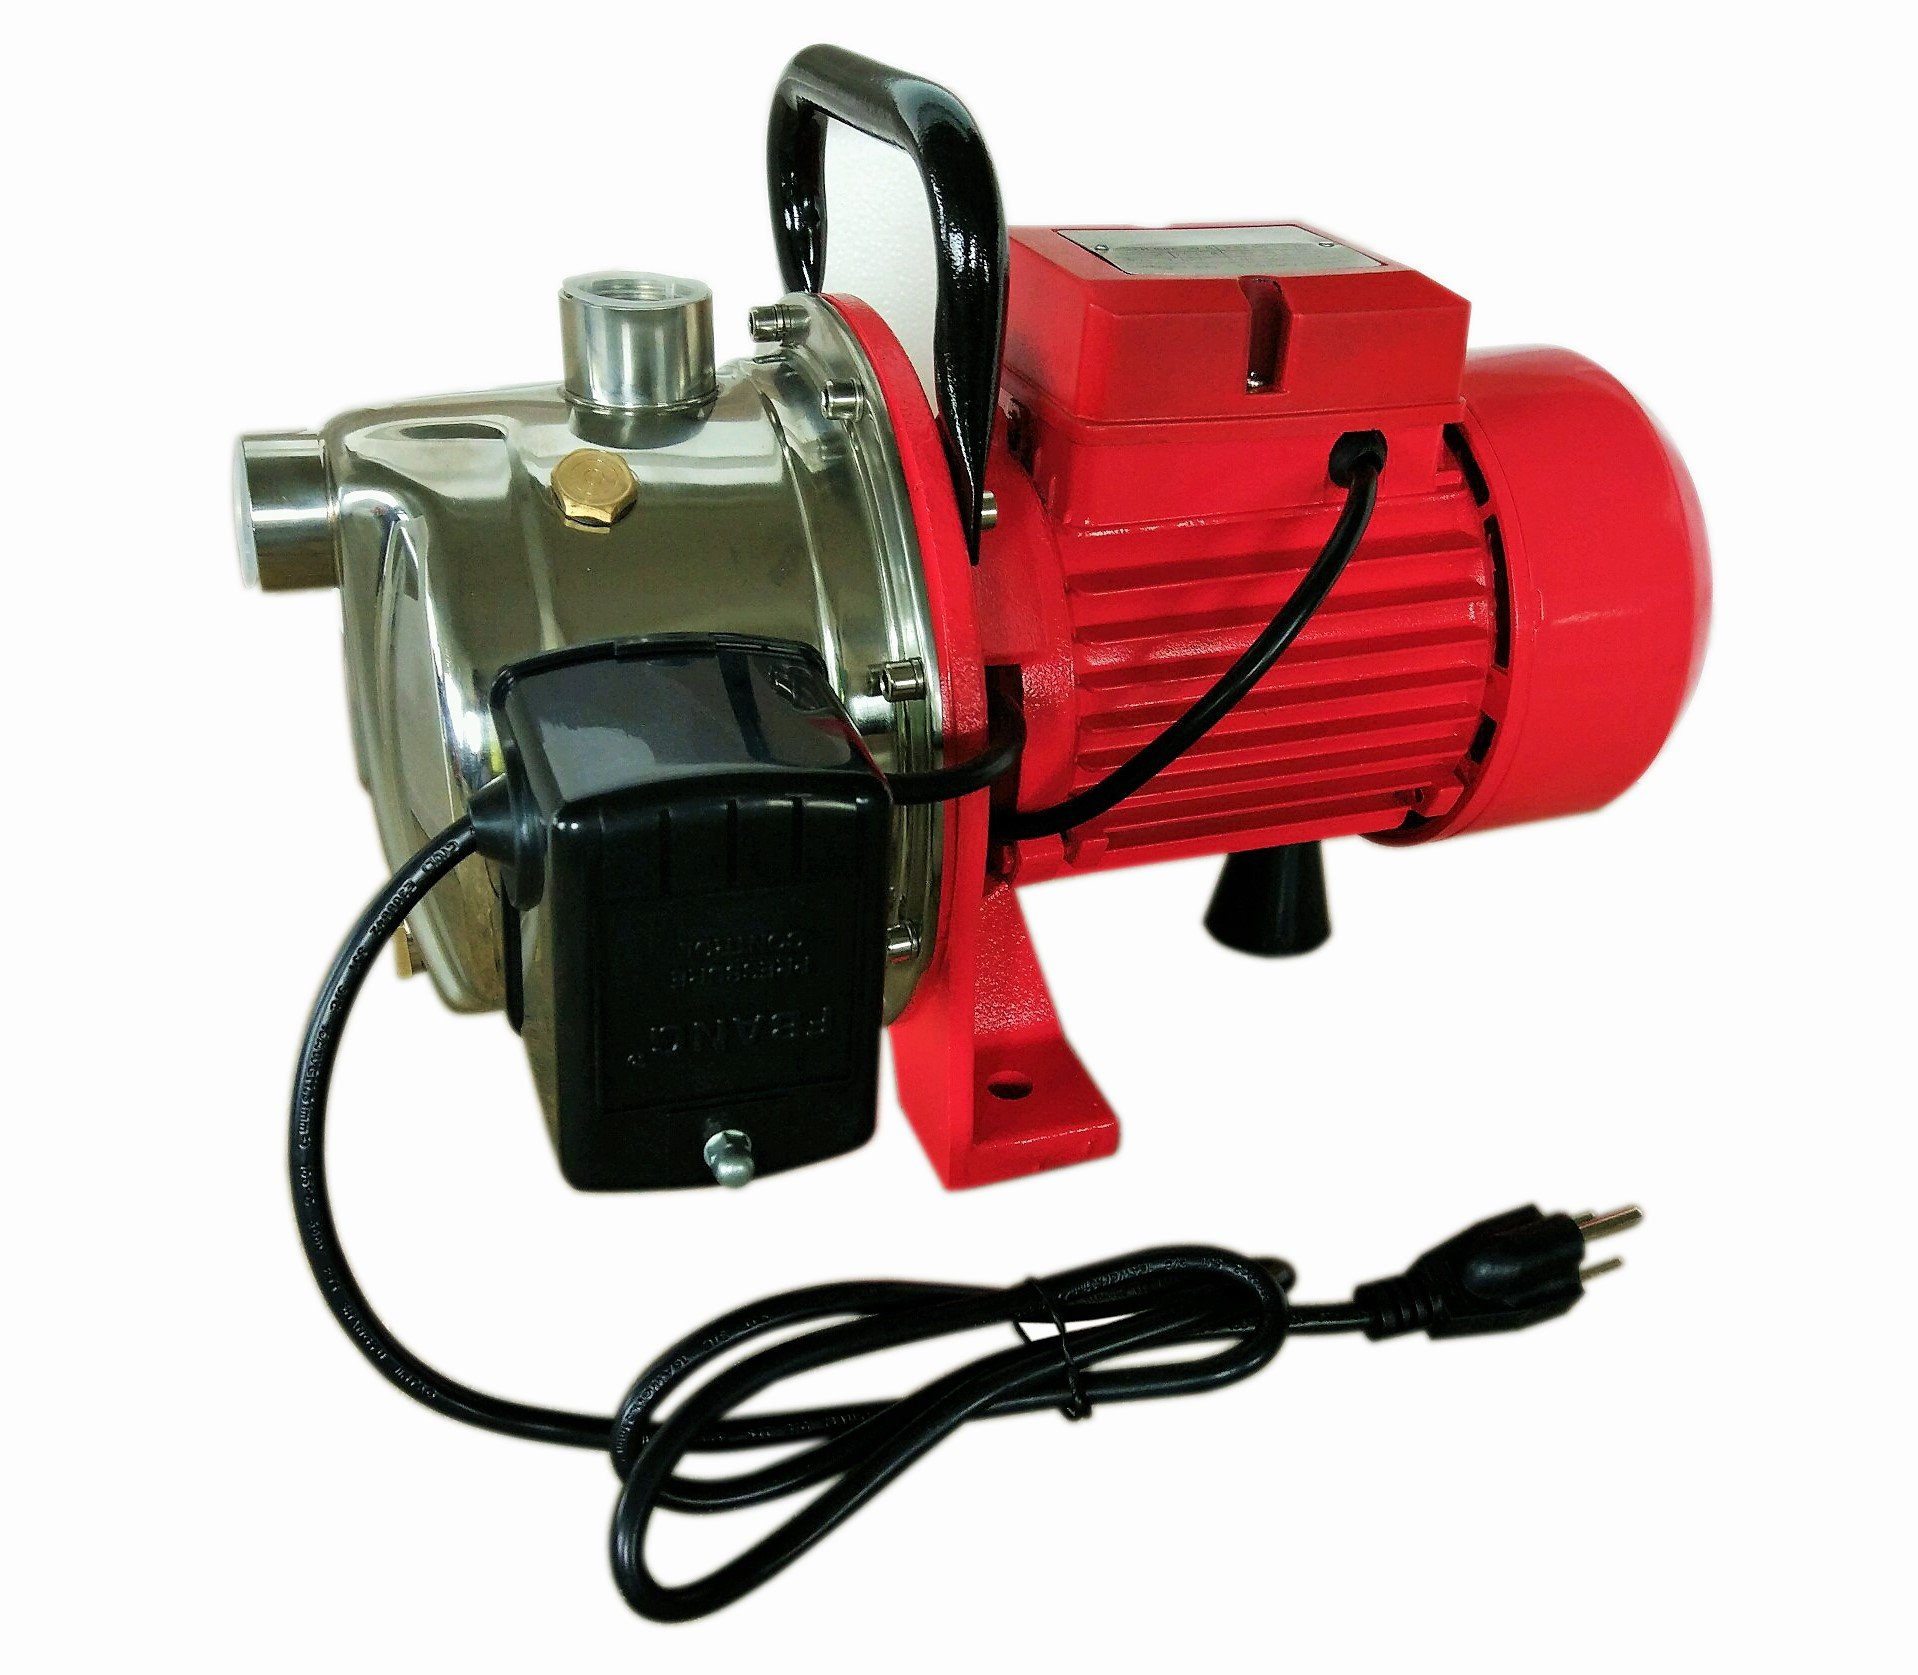 Hallmark Industries MA0438X-8 Jet Pump with Pressure Switch, 14 gpm, Stainless Steel, Self Priming, 3/4 hp, 115/230V, Head 30' In/151' Out